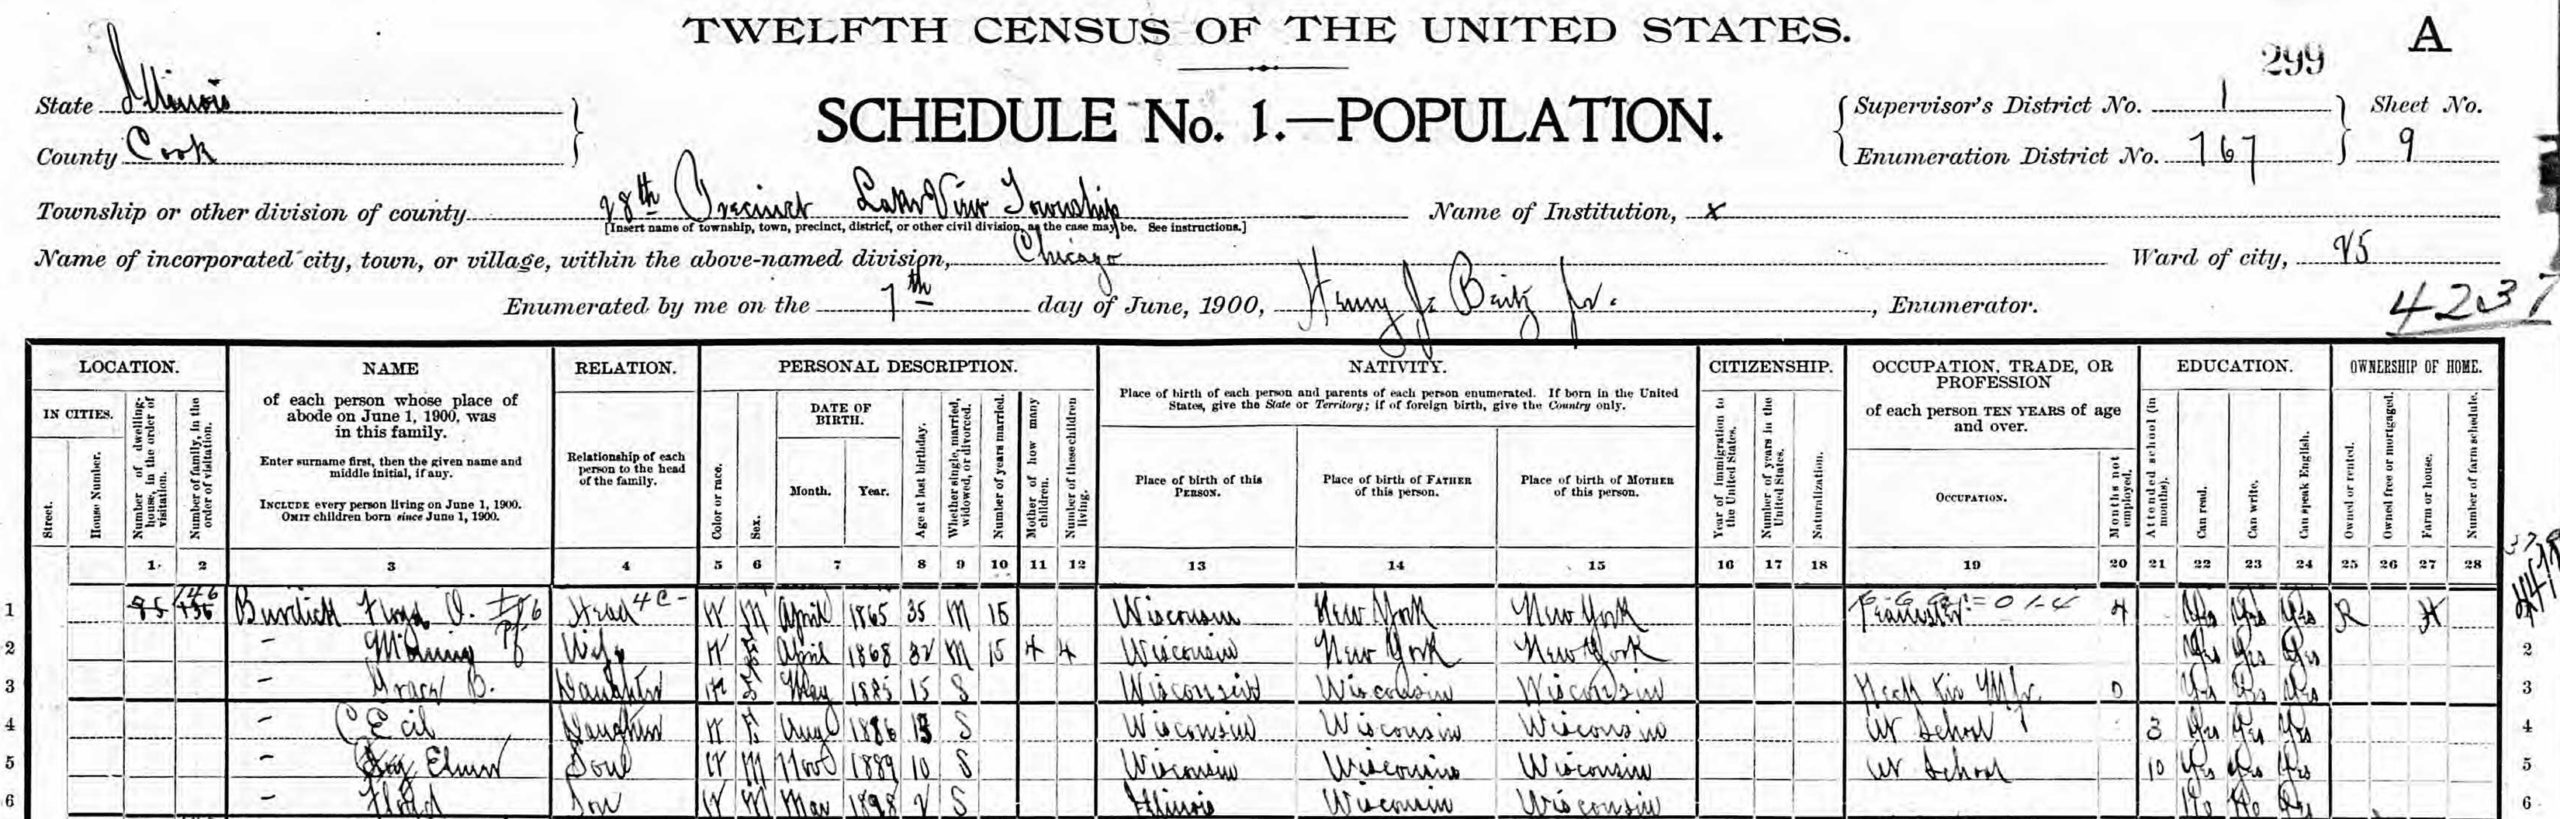 A form from the 1900 US Census